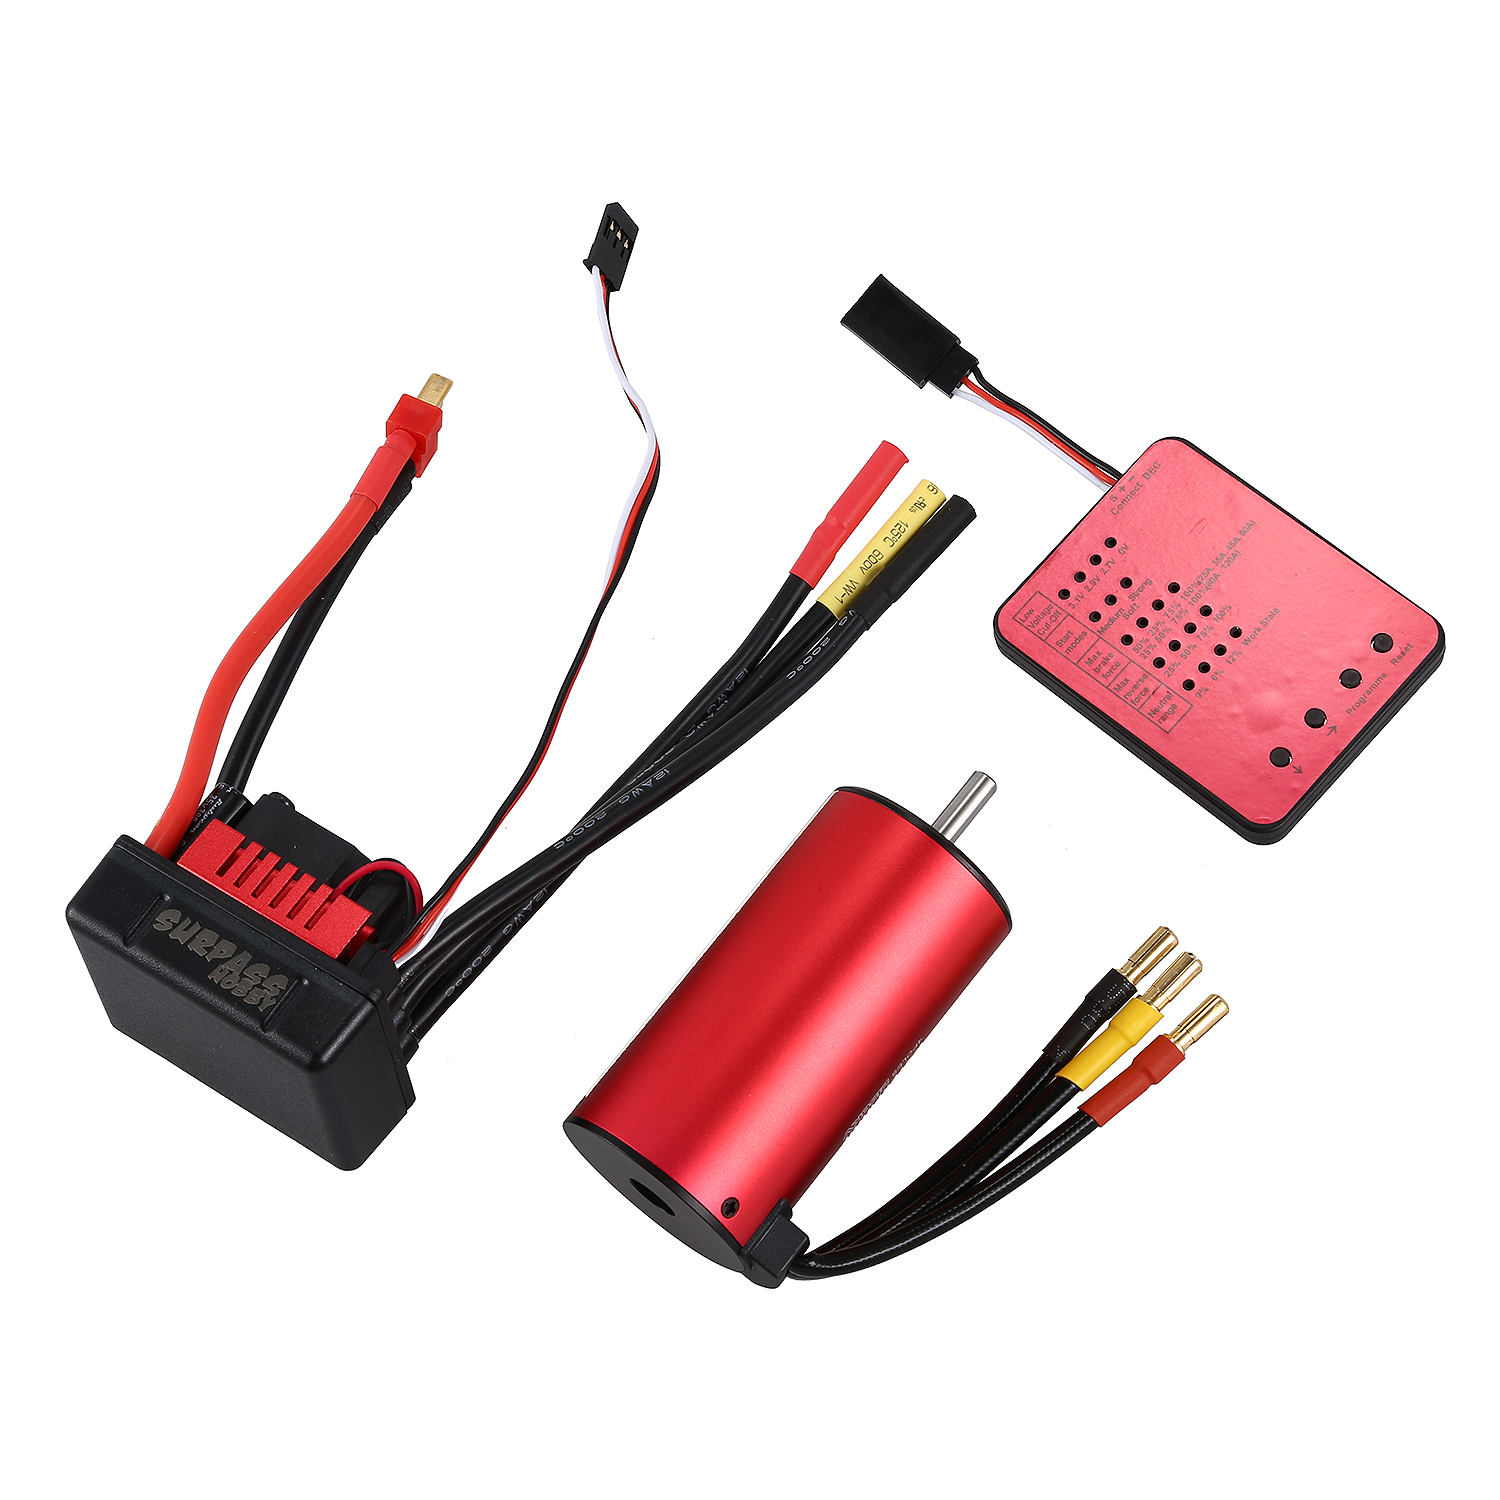 SURPASS HOBBY S3670 2150KV Sensorless Brushless Motor 120A Brushless ESC and Program Card Combo Set for 1/8 RC Car Truck original goolrc s3650 3900kv sensorless brushless motor 60a brushless esc and program card combo set for 1 10 rc car truck